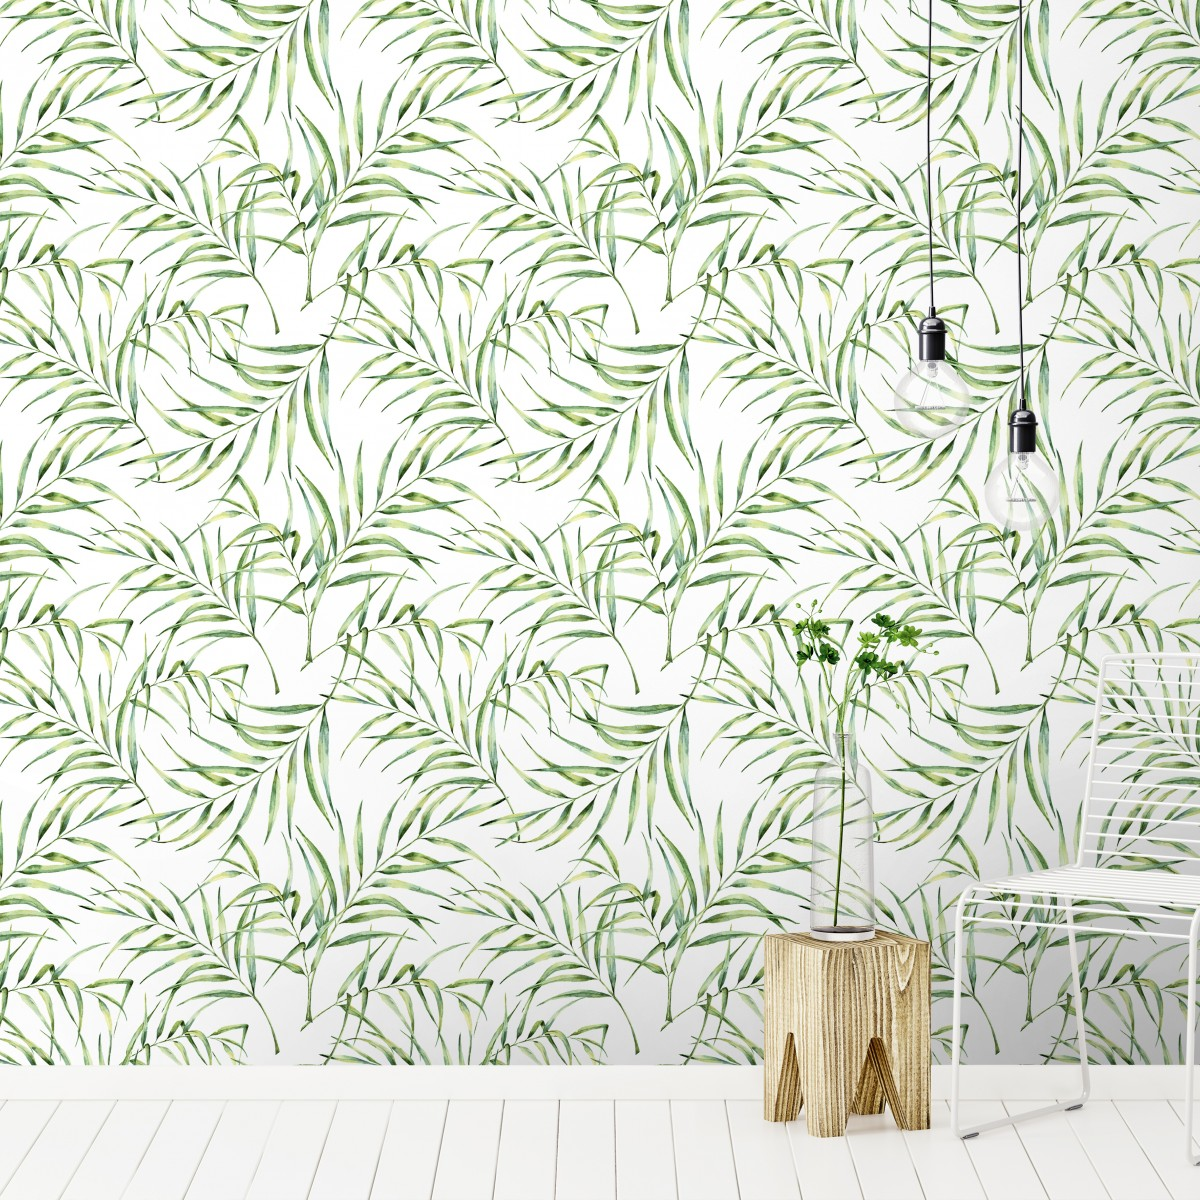 Tapet designer Palm Breeze (Watercolour Palm Leaf) - Feathr